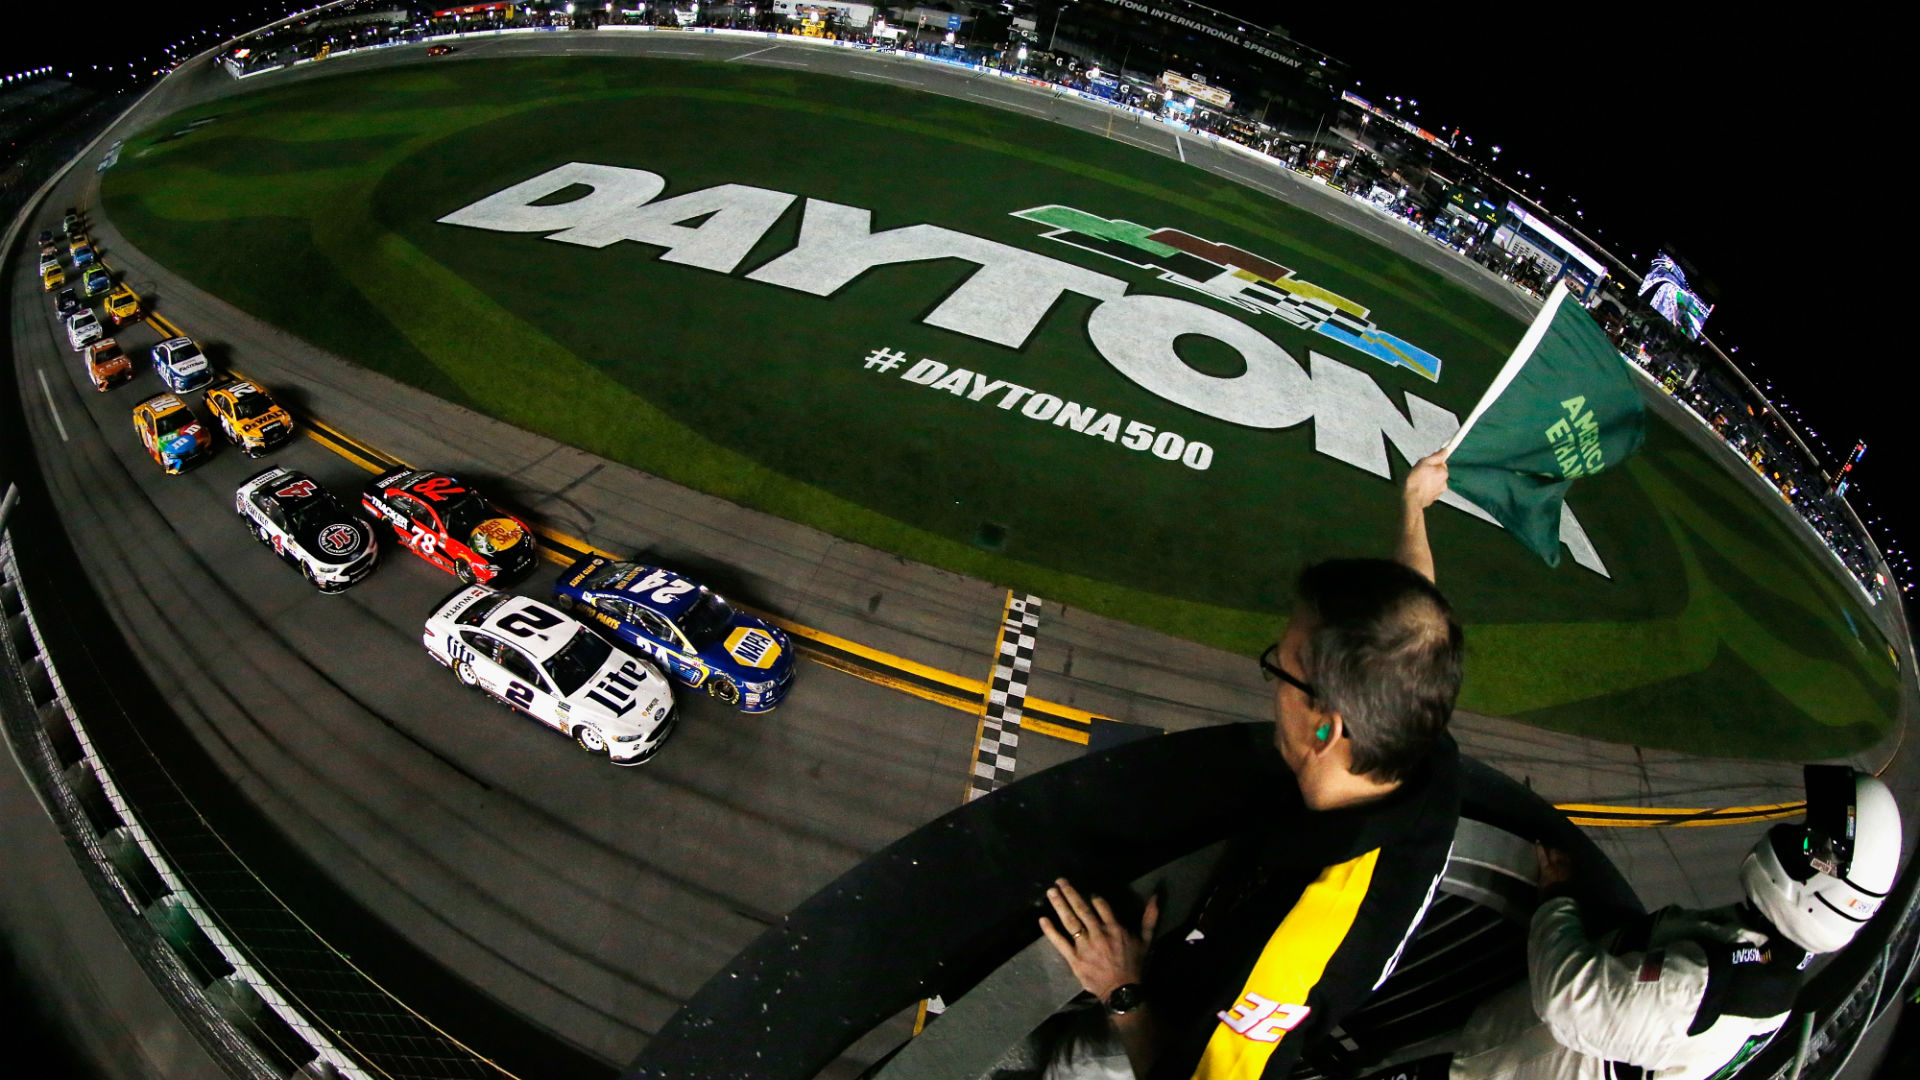 daytona 500 qualifying results highlights and more from the duel rh sportingnews com daytona supercross qualifying results daytona 24 qualifying results